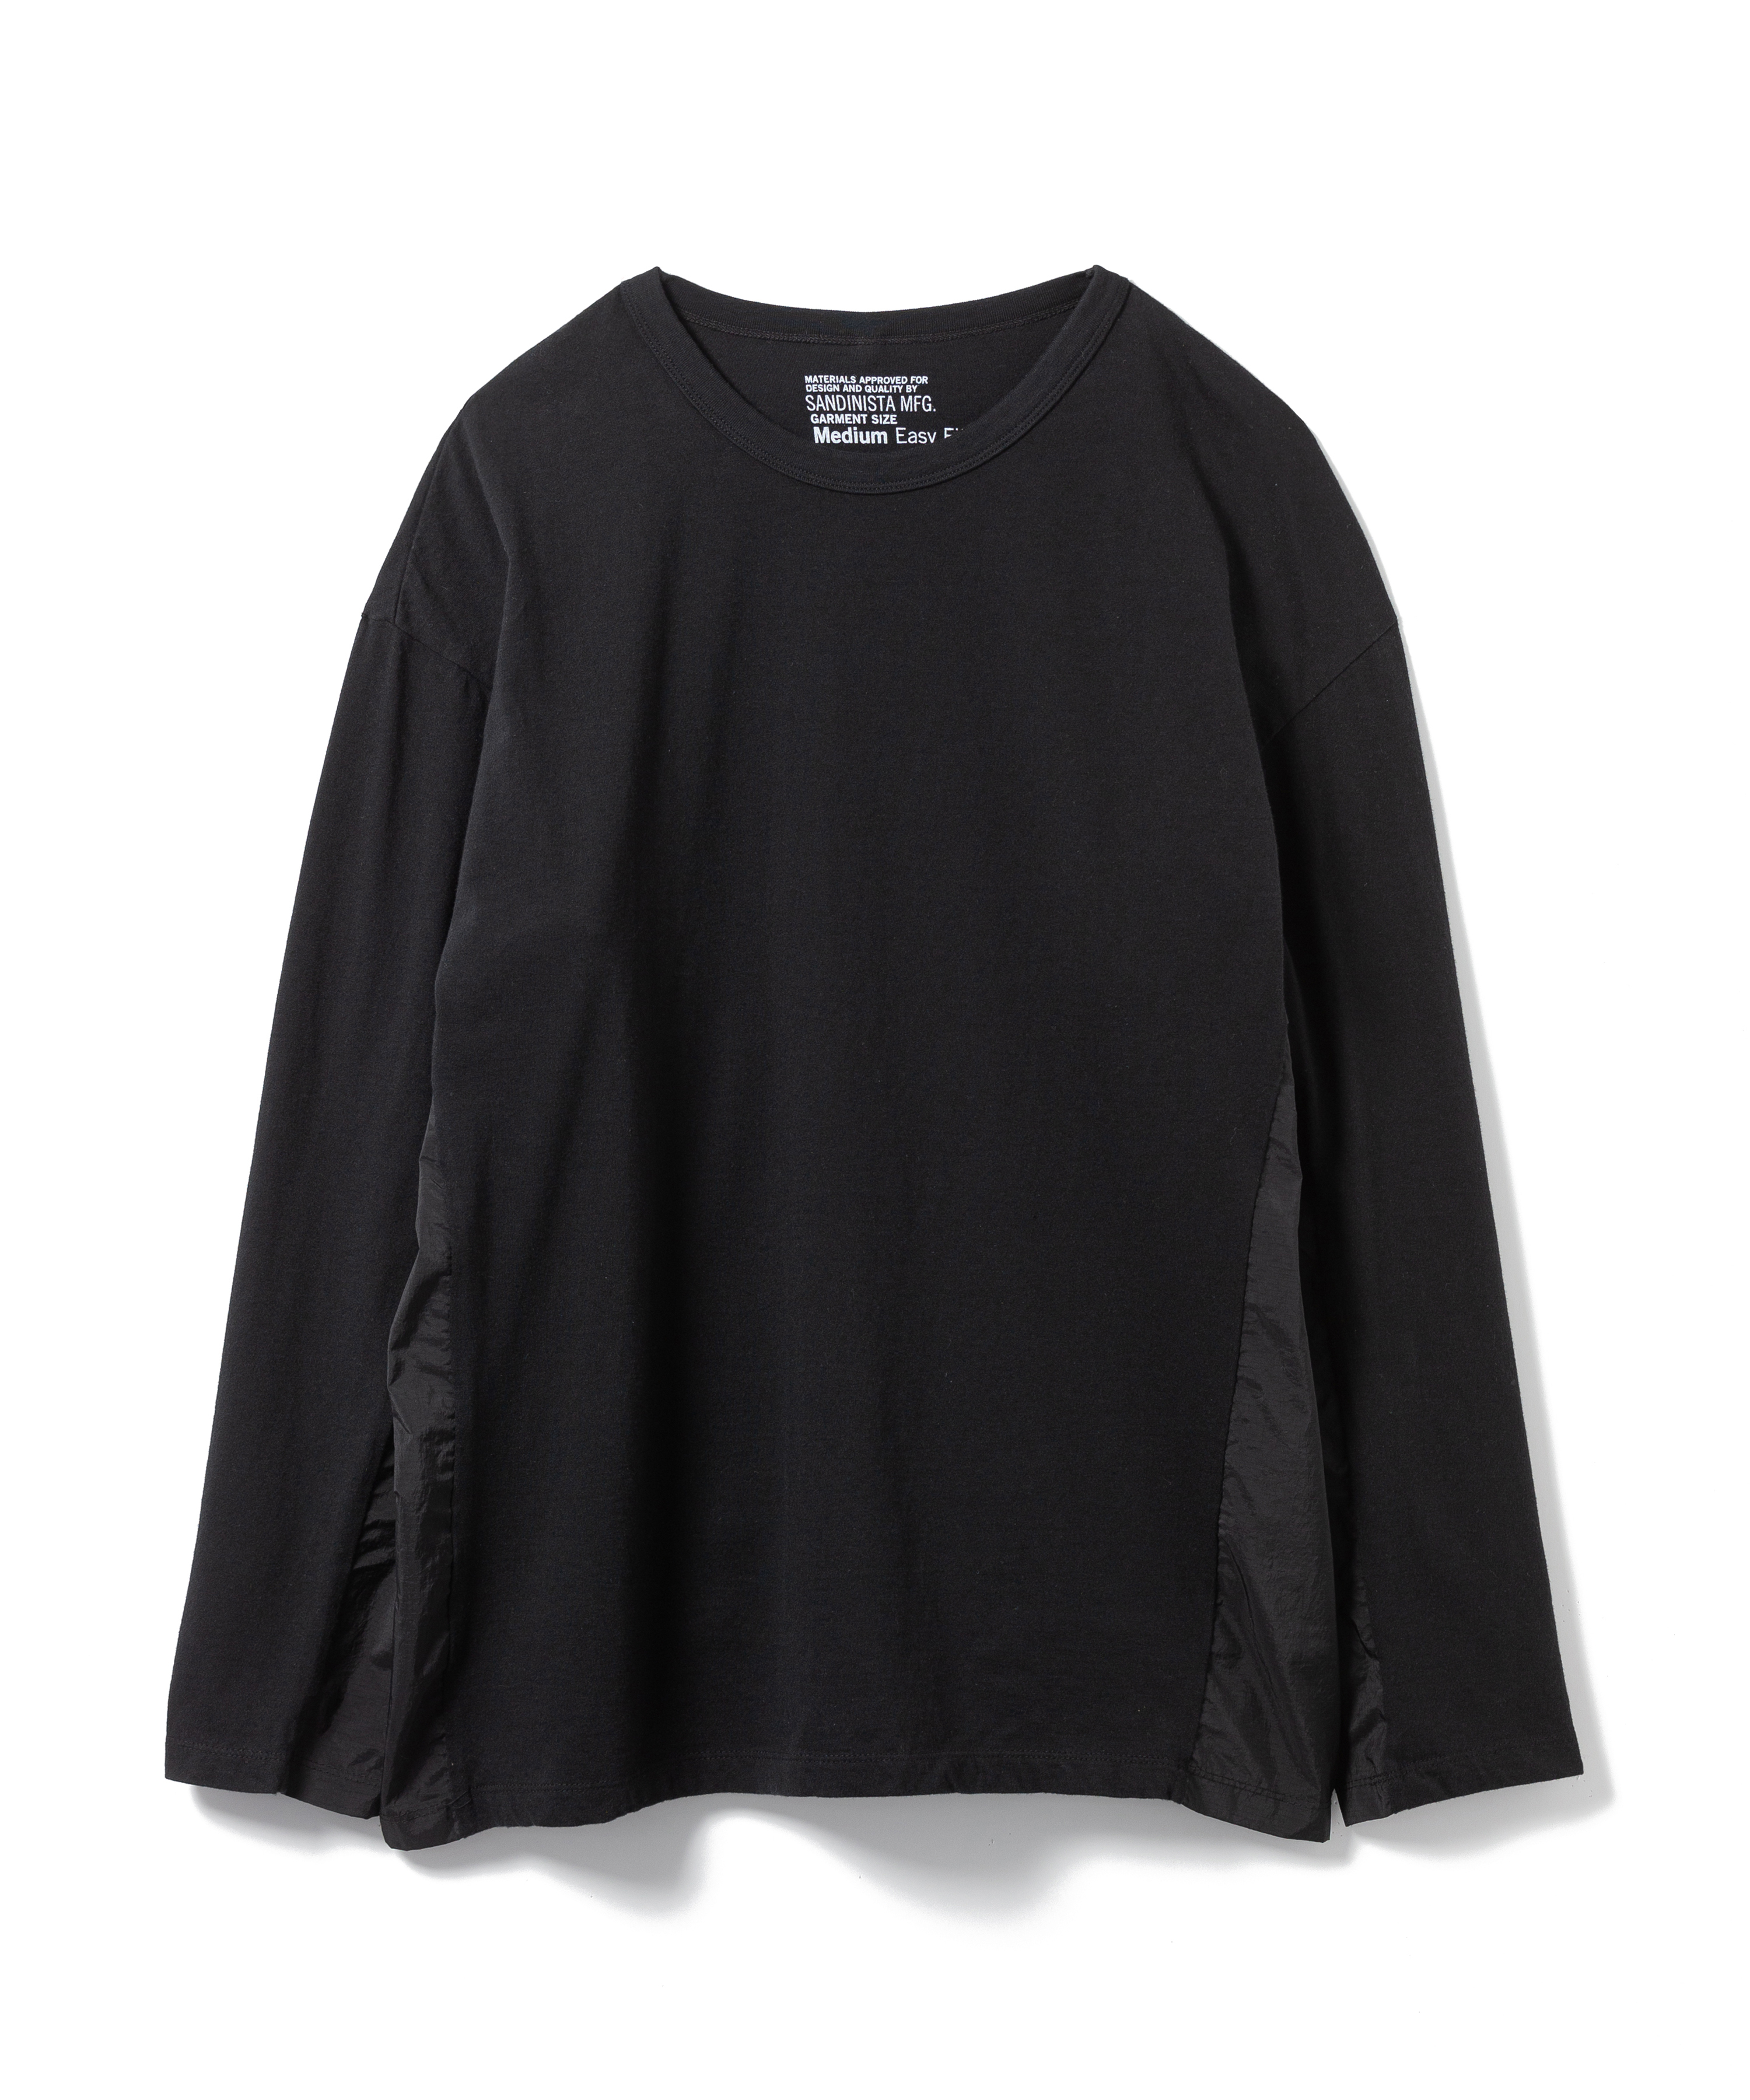 【SANDINISTA】Workout L/S Tee